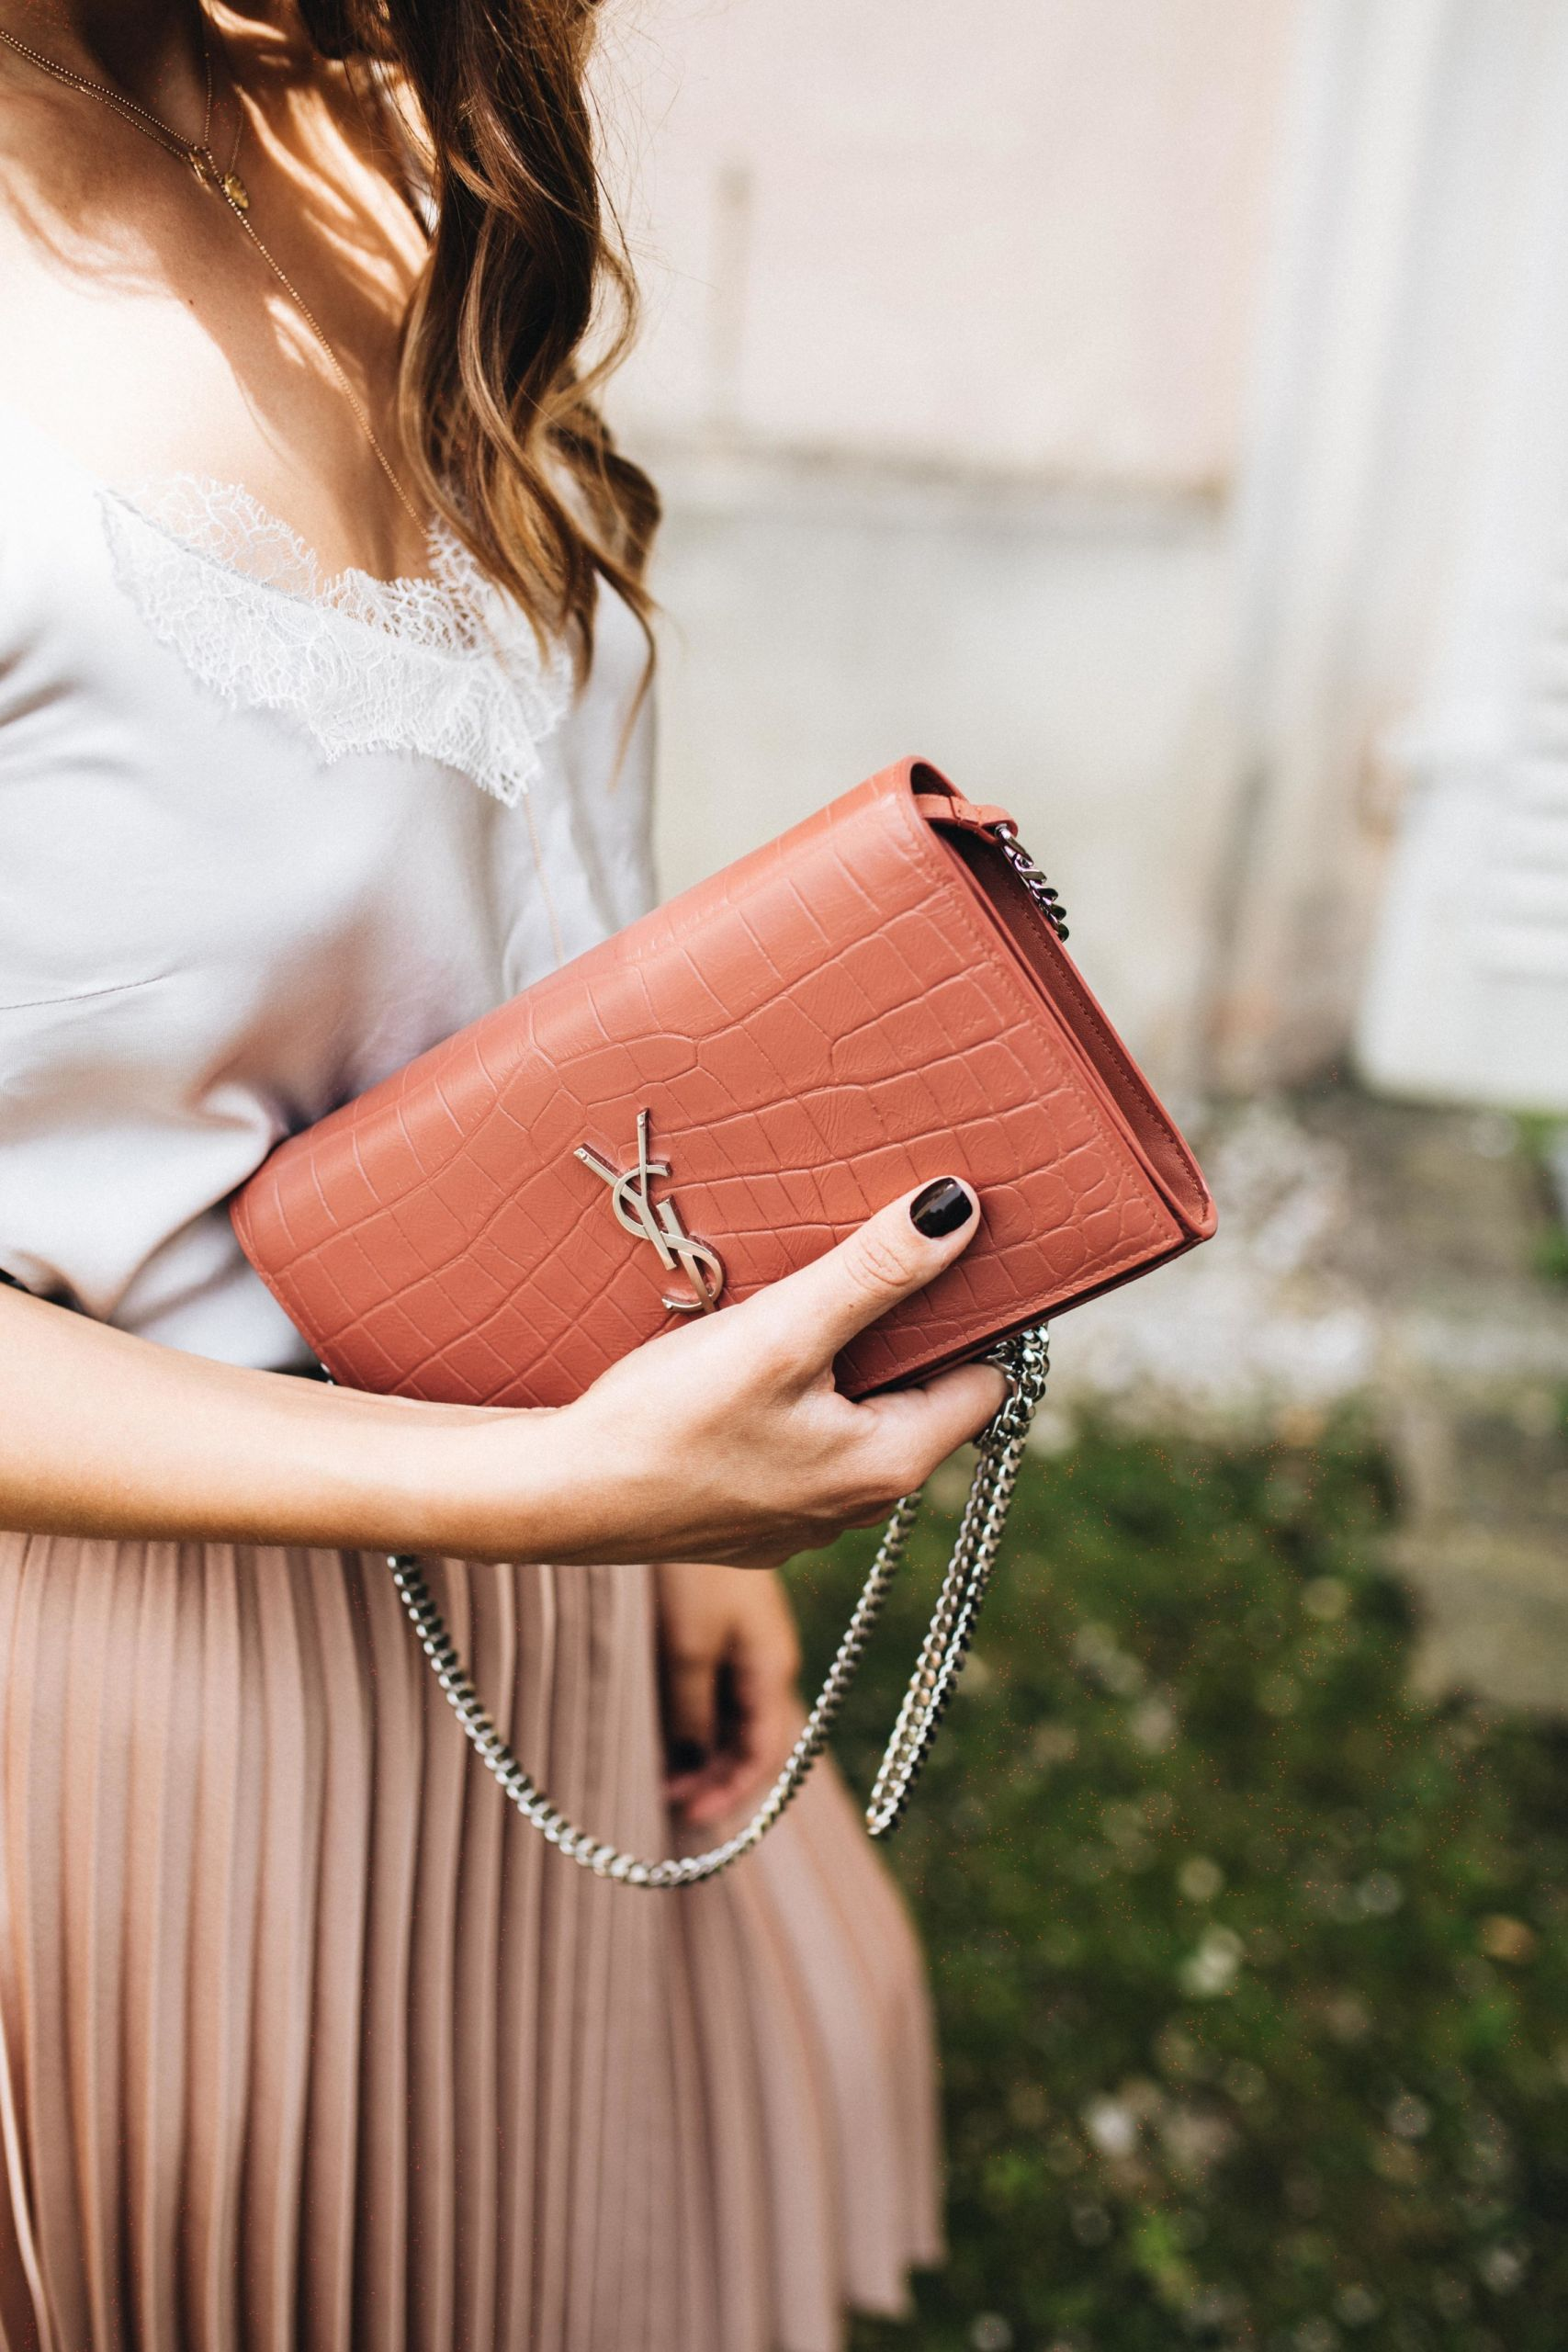 Sosodaily Fleamarket: Saint Laurent Wallet on a Chain | Love Daily Dose